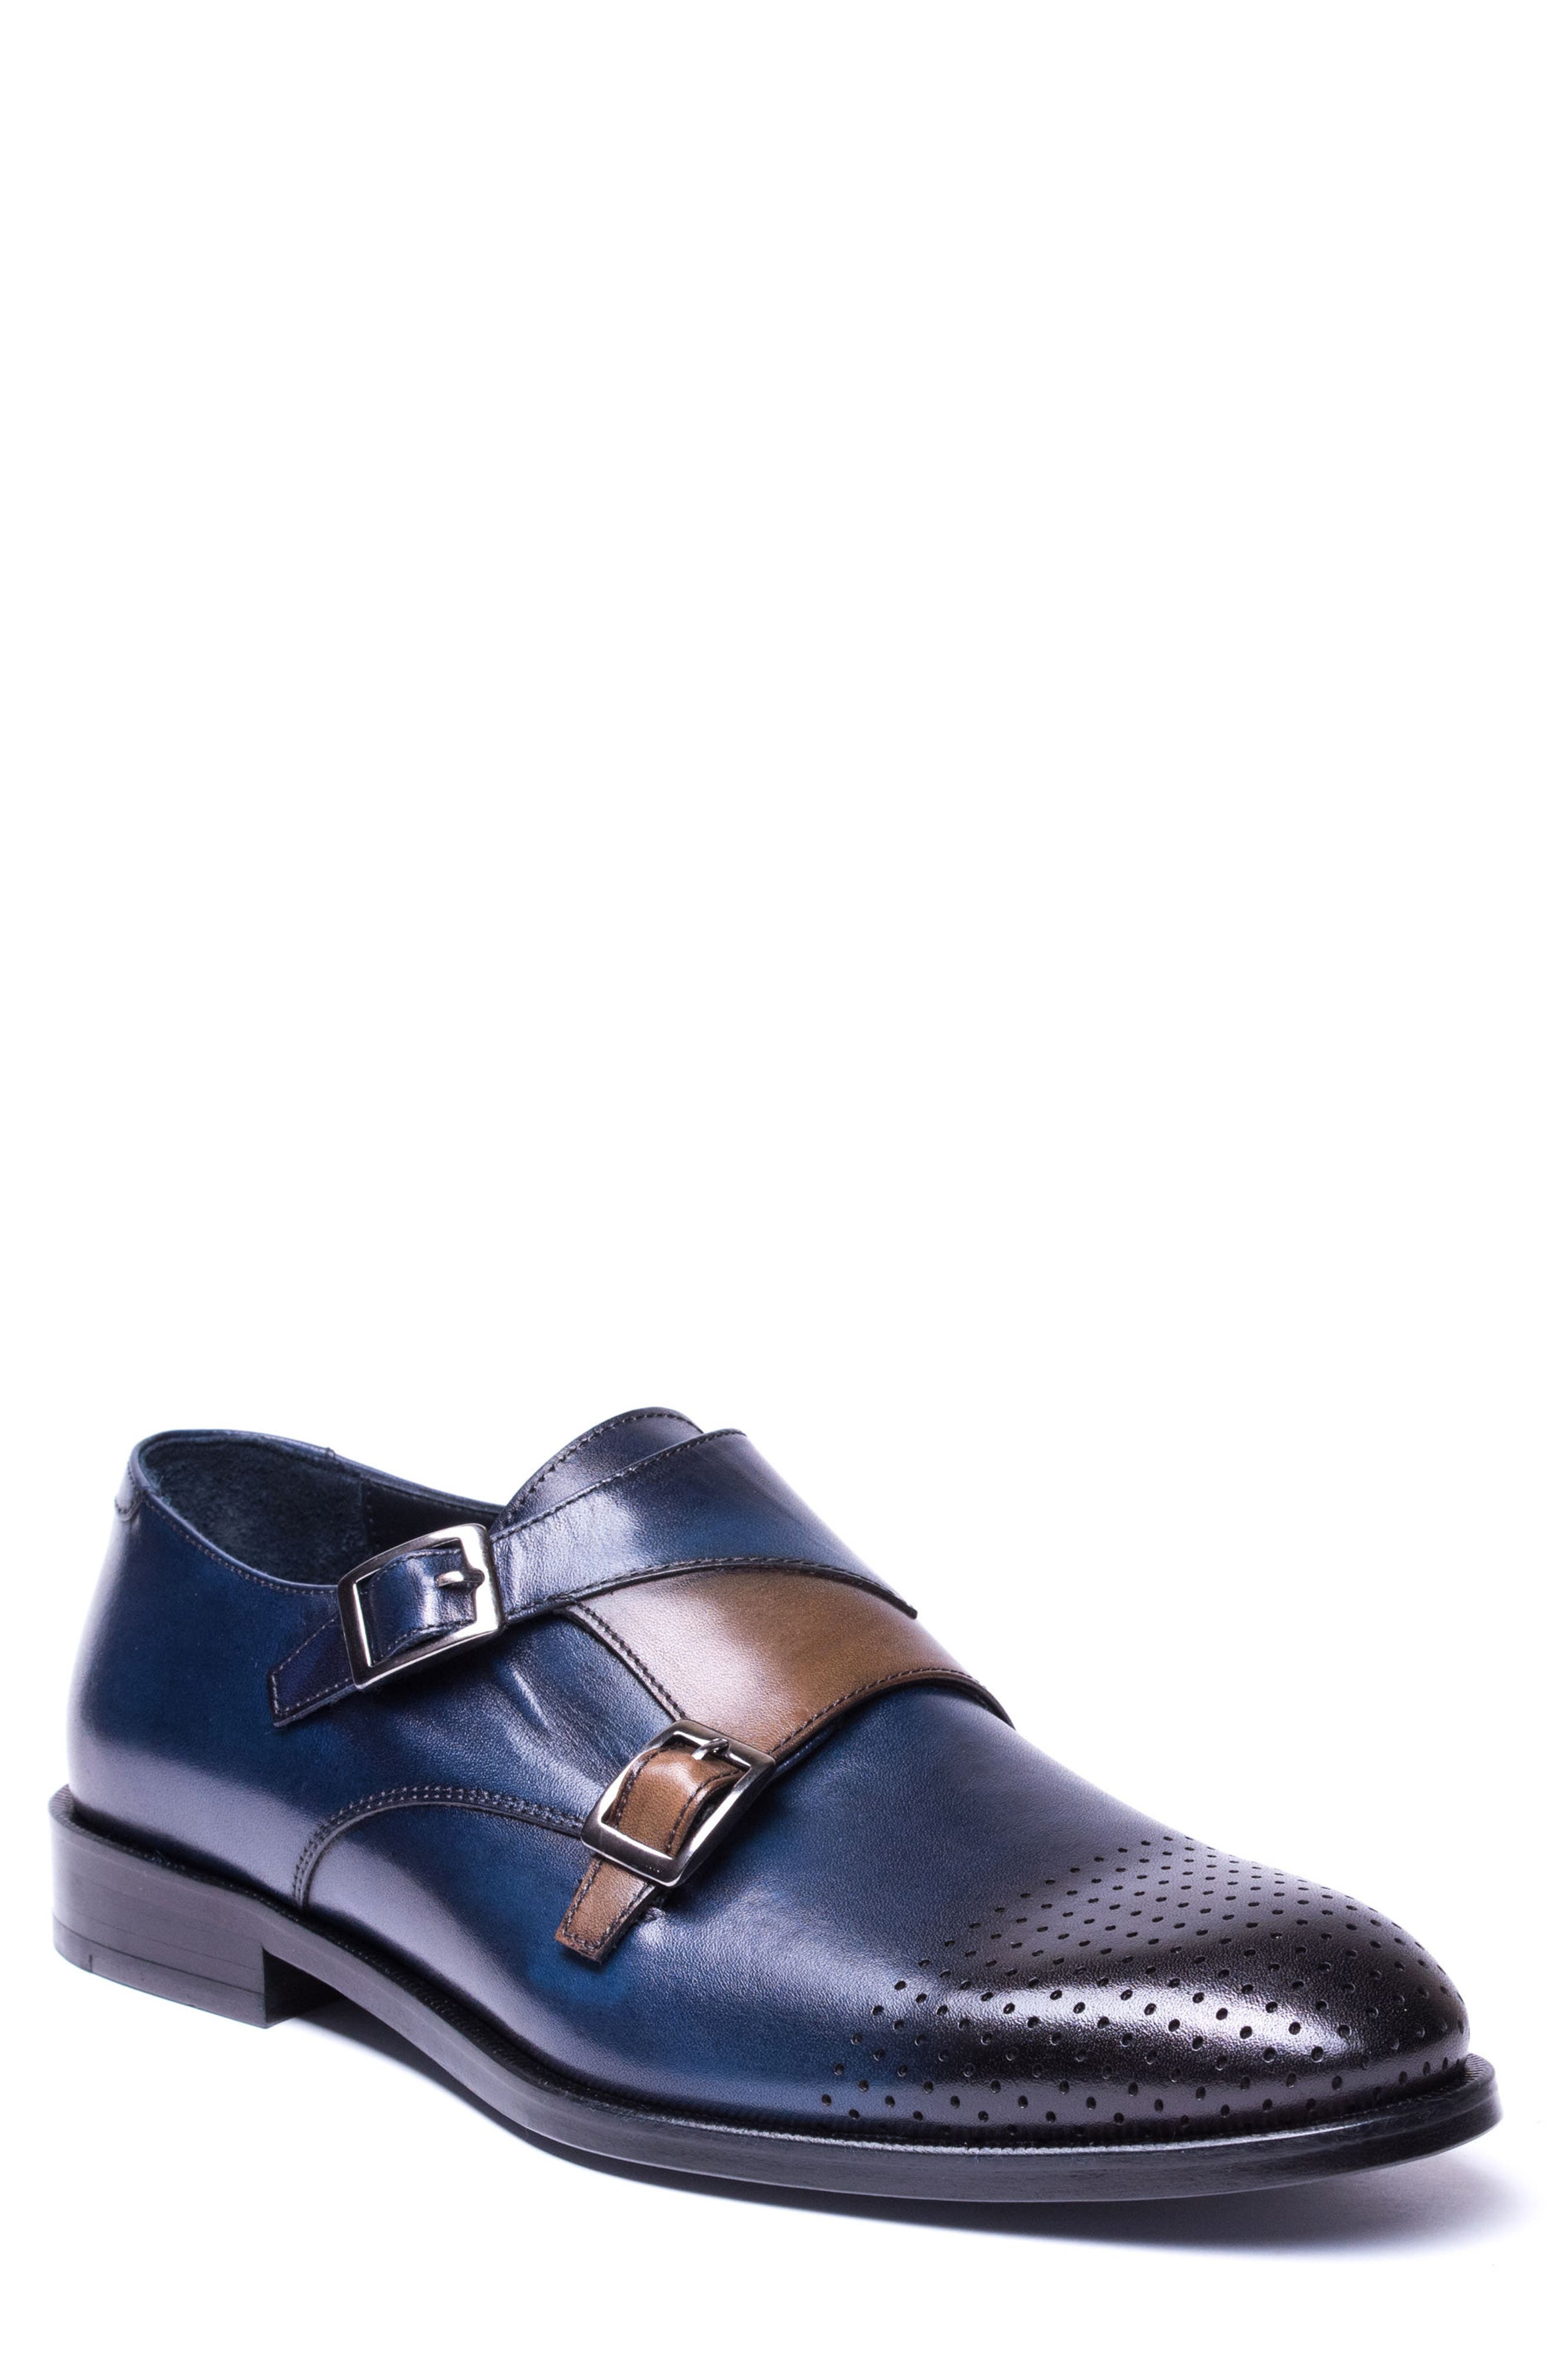 Double Buckle Monk Shoe,                         Main,                         color, Navy Leather